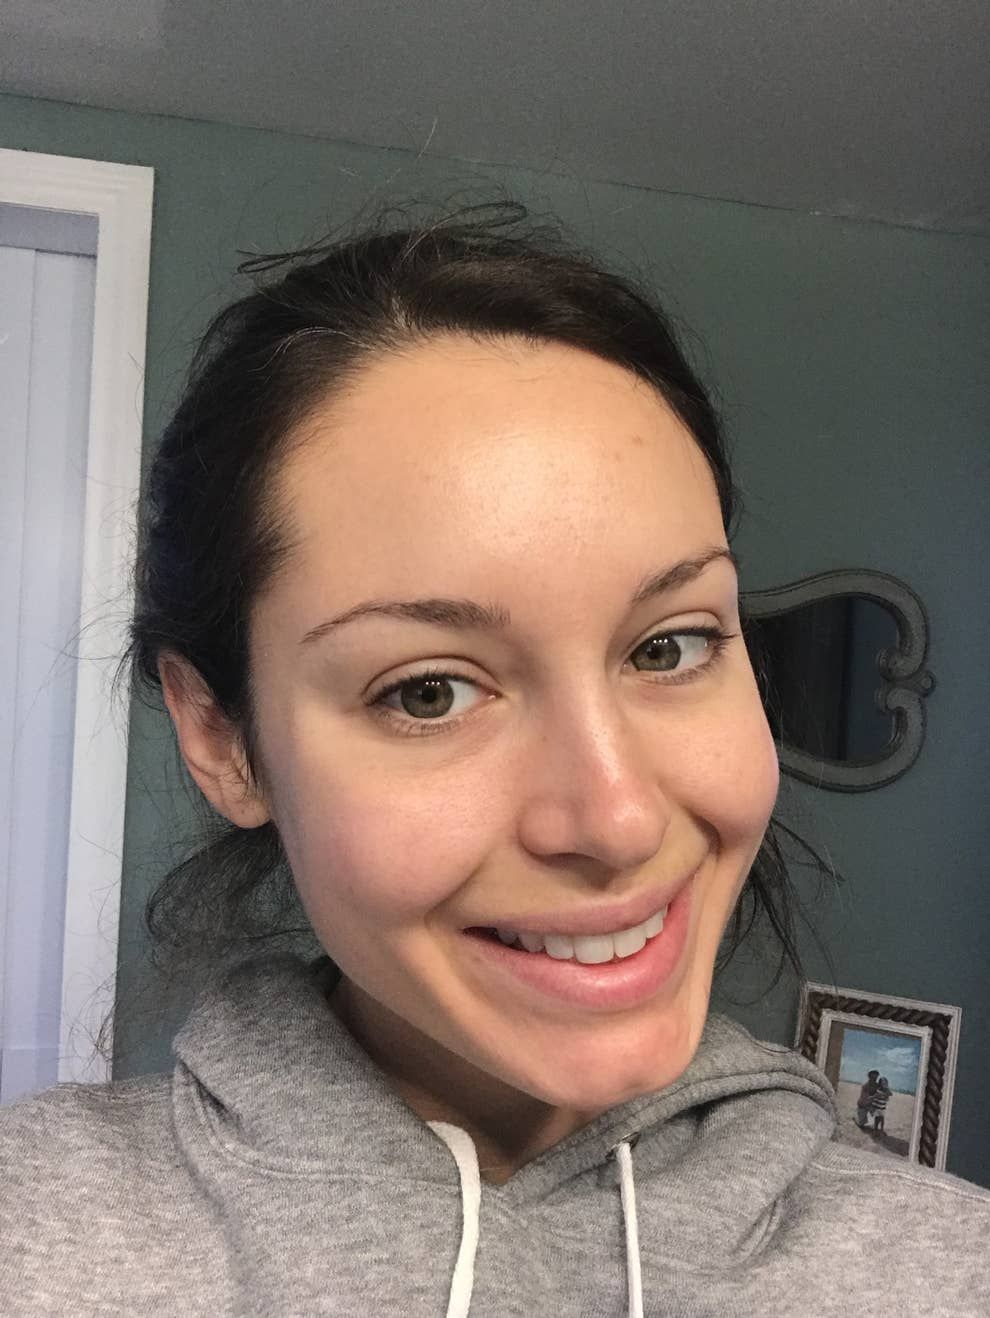 I Tried Jennifer Lopez S Skincare Routine And The Results Were Pretty Dramatic Cheek Acne Skin Care Skin Care Routine